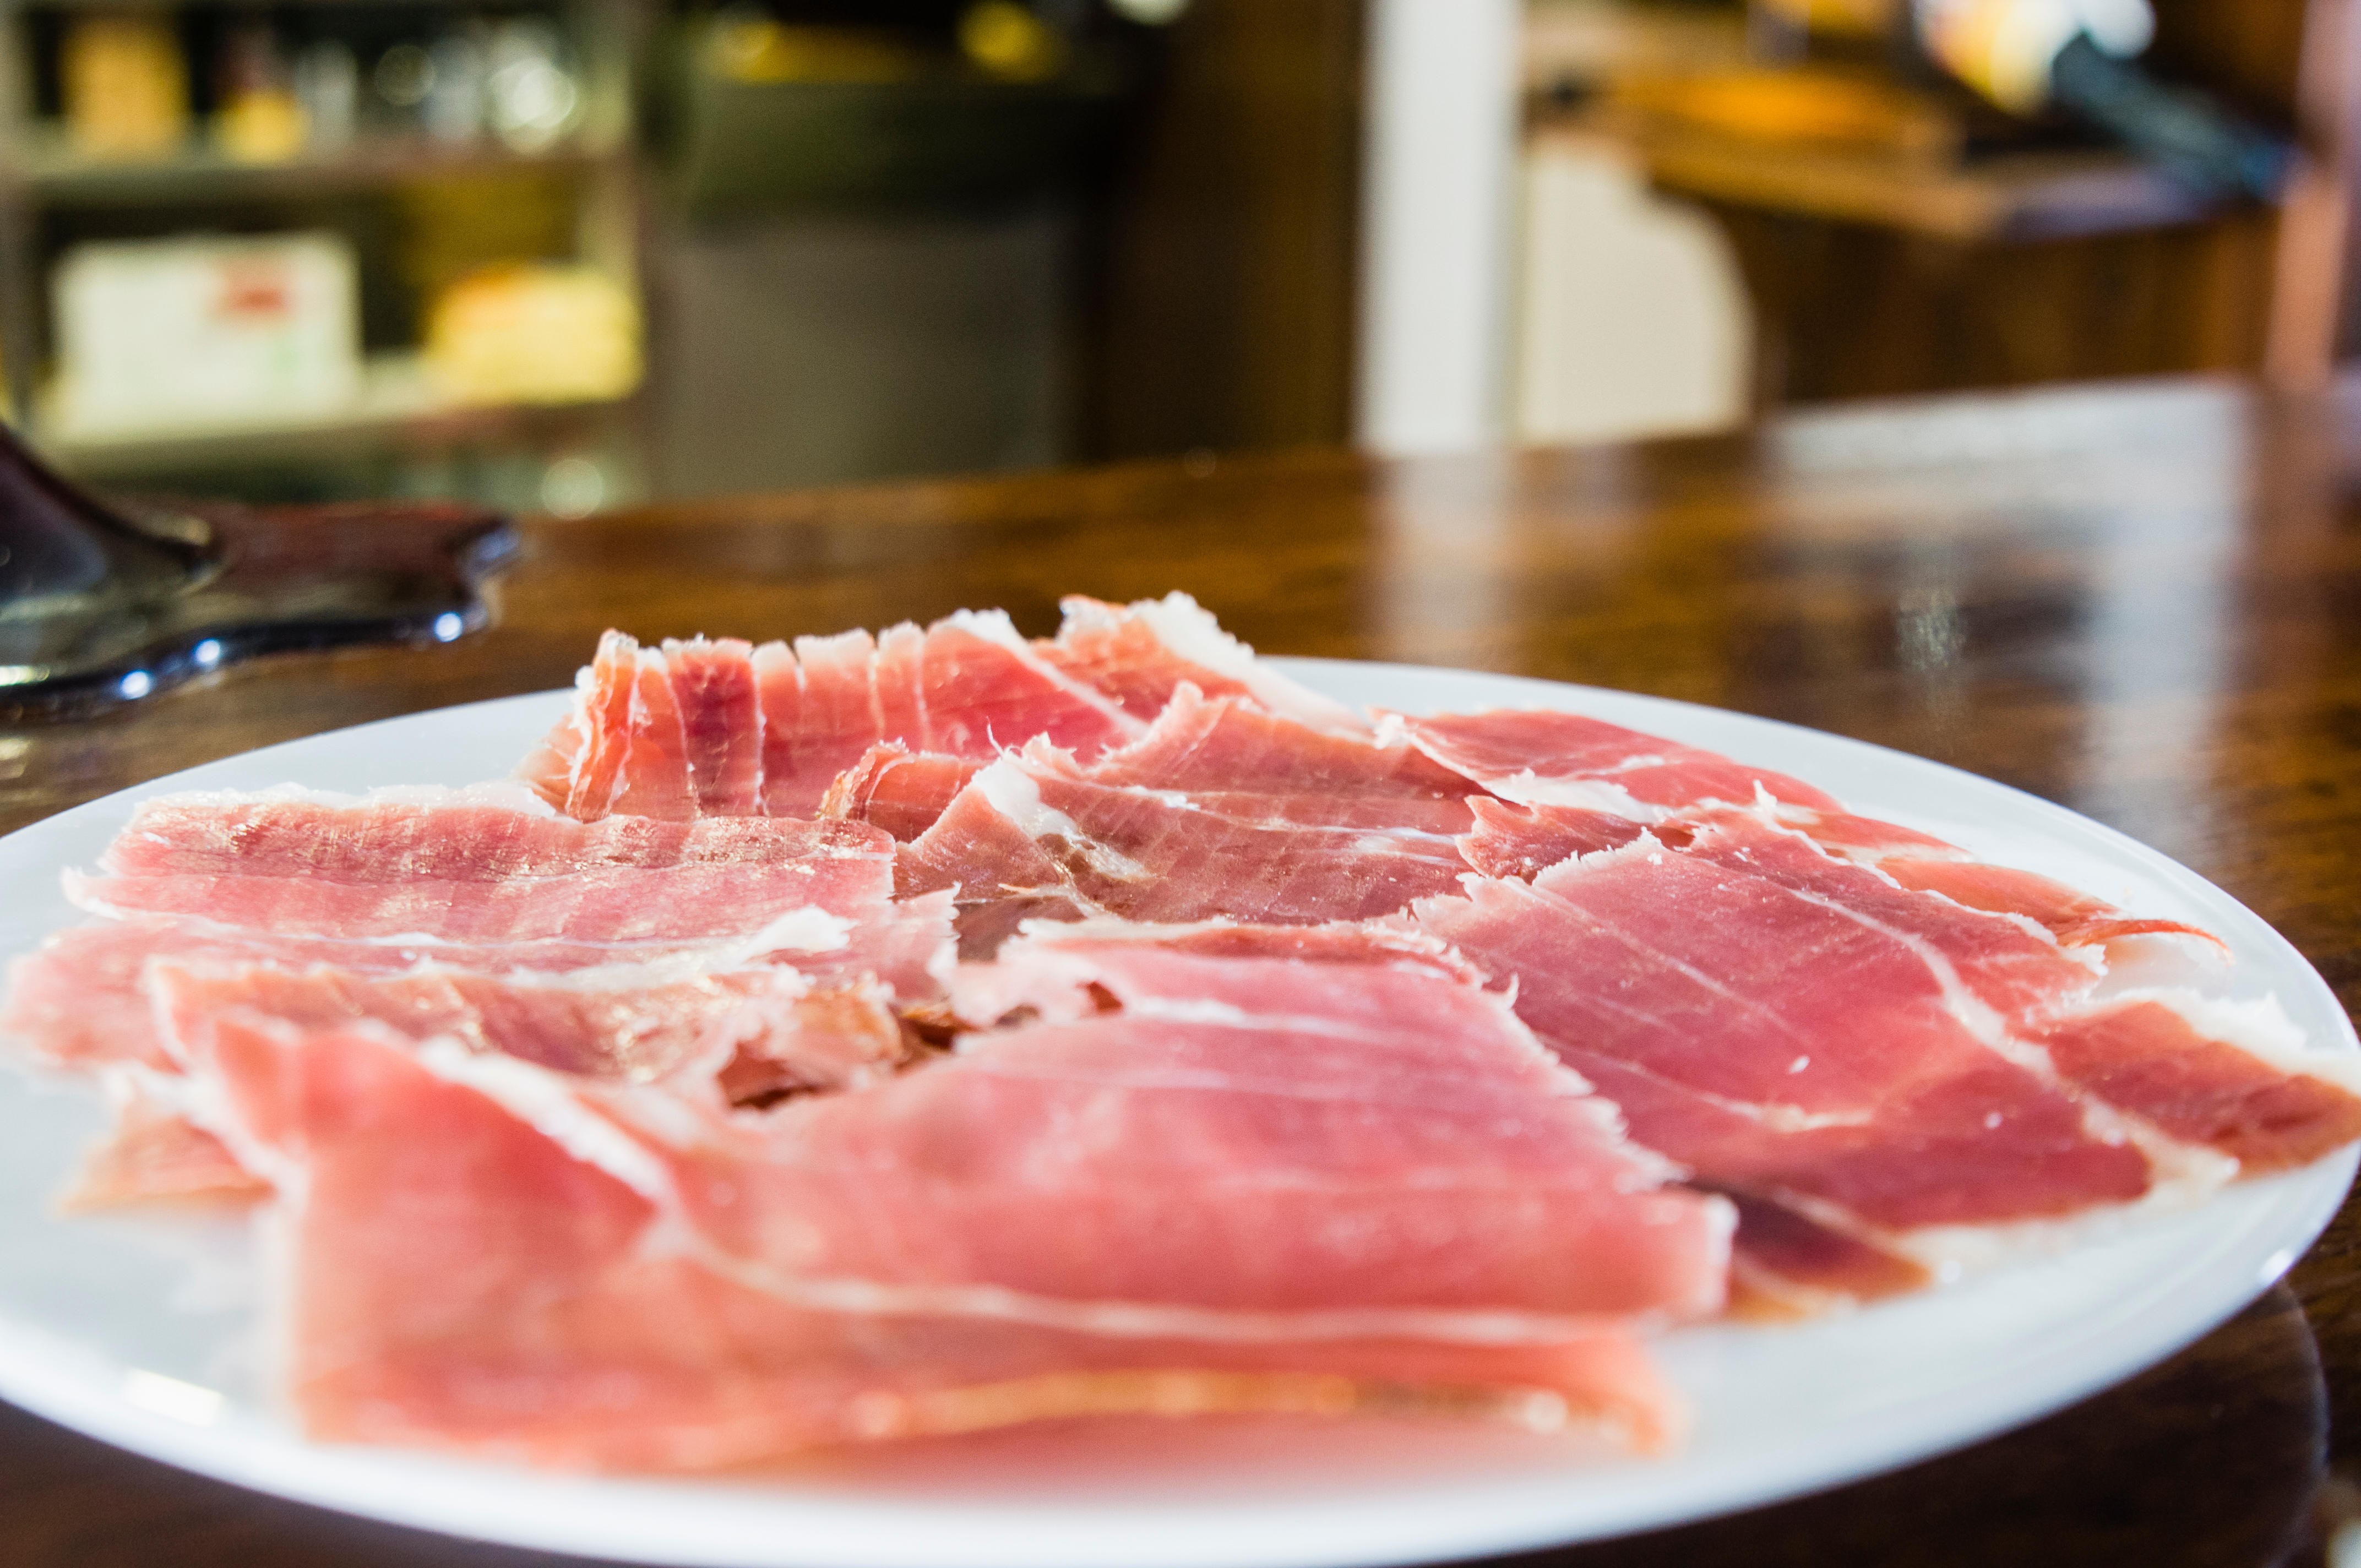 Spanish ham (Jamon iberico, Iberian ham, pata negra) cured ham served as a tapas in a bar